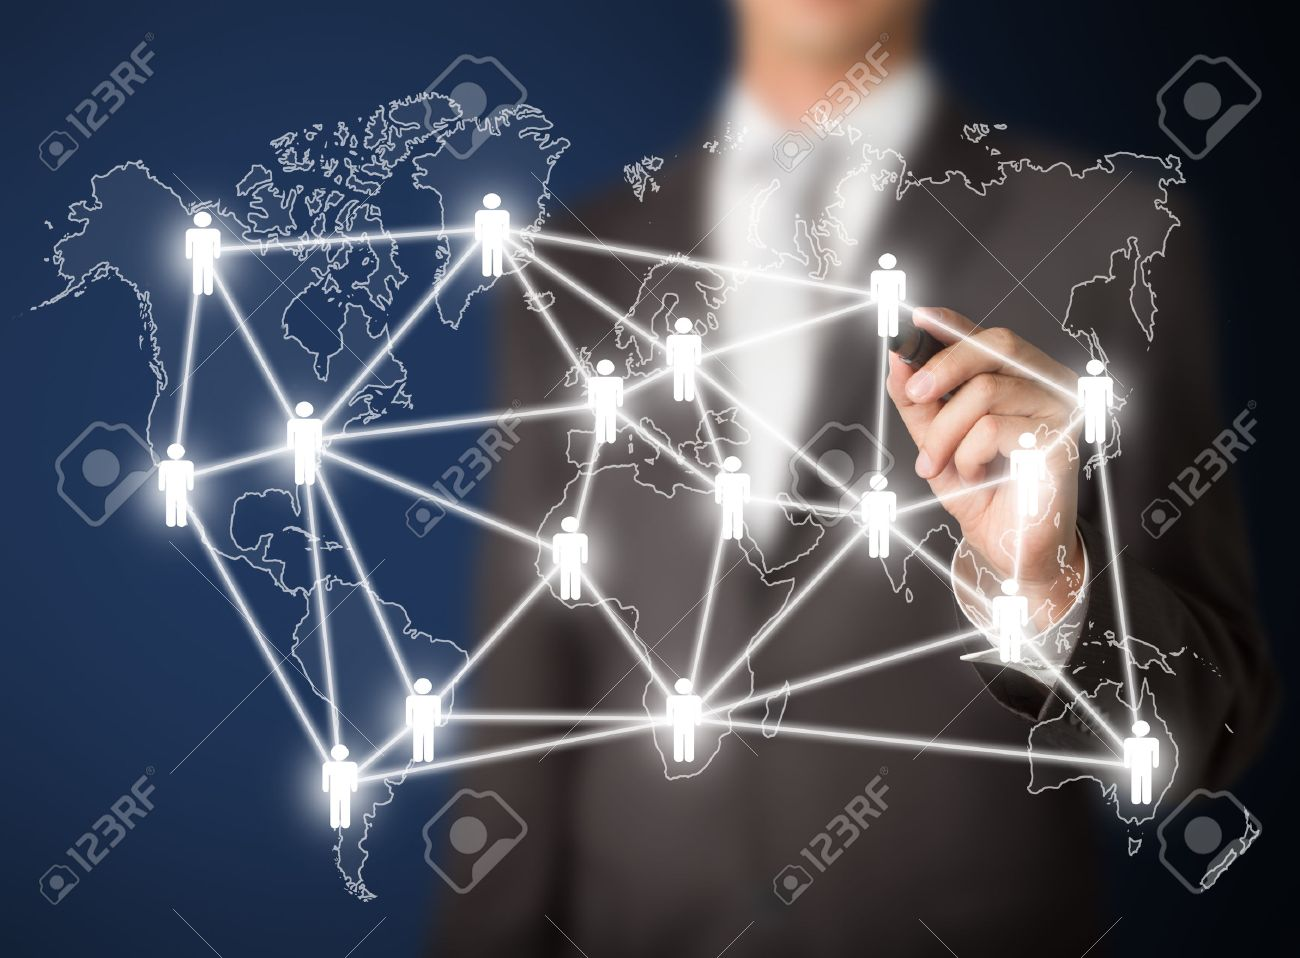 business man writing people management connection or global social network Stock Photo - 25168572